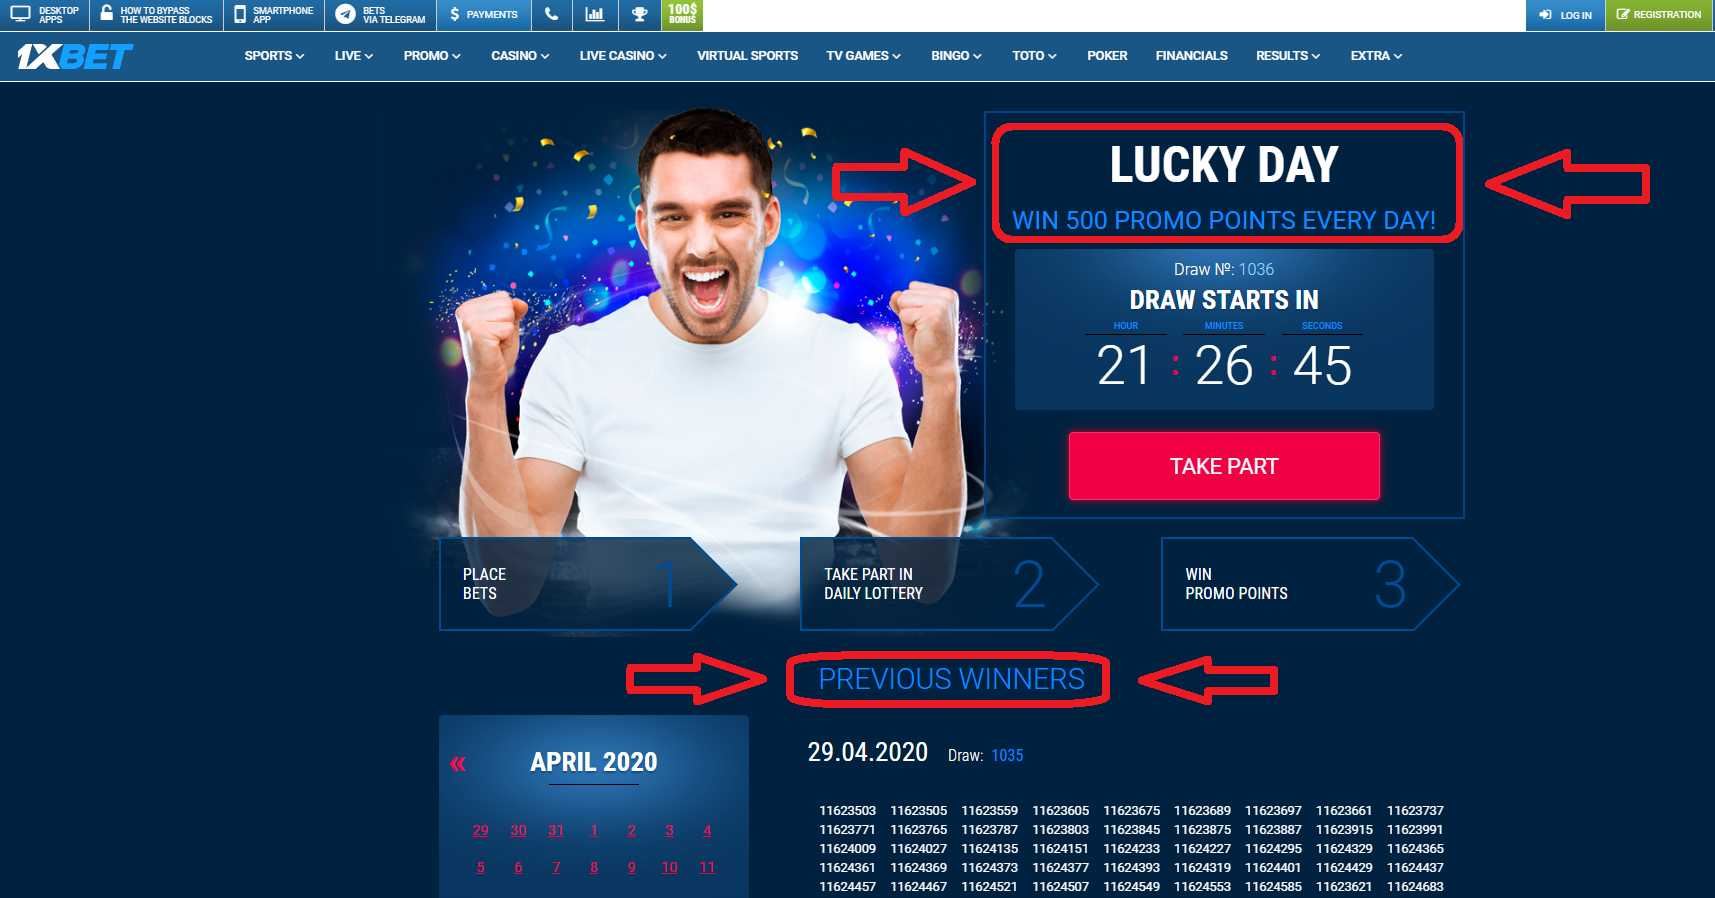 Lucky Friday 1xBet information